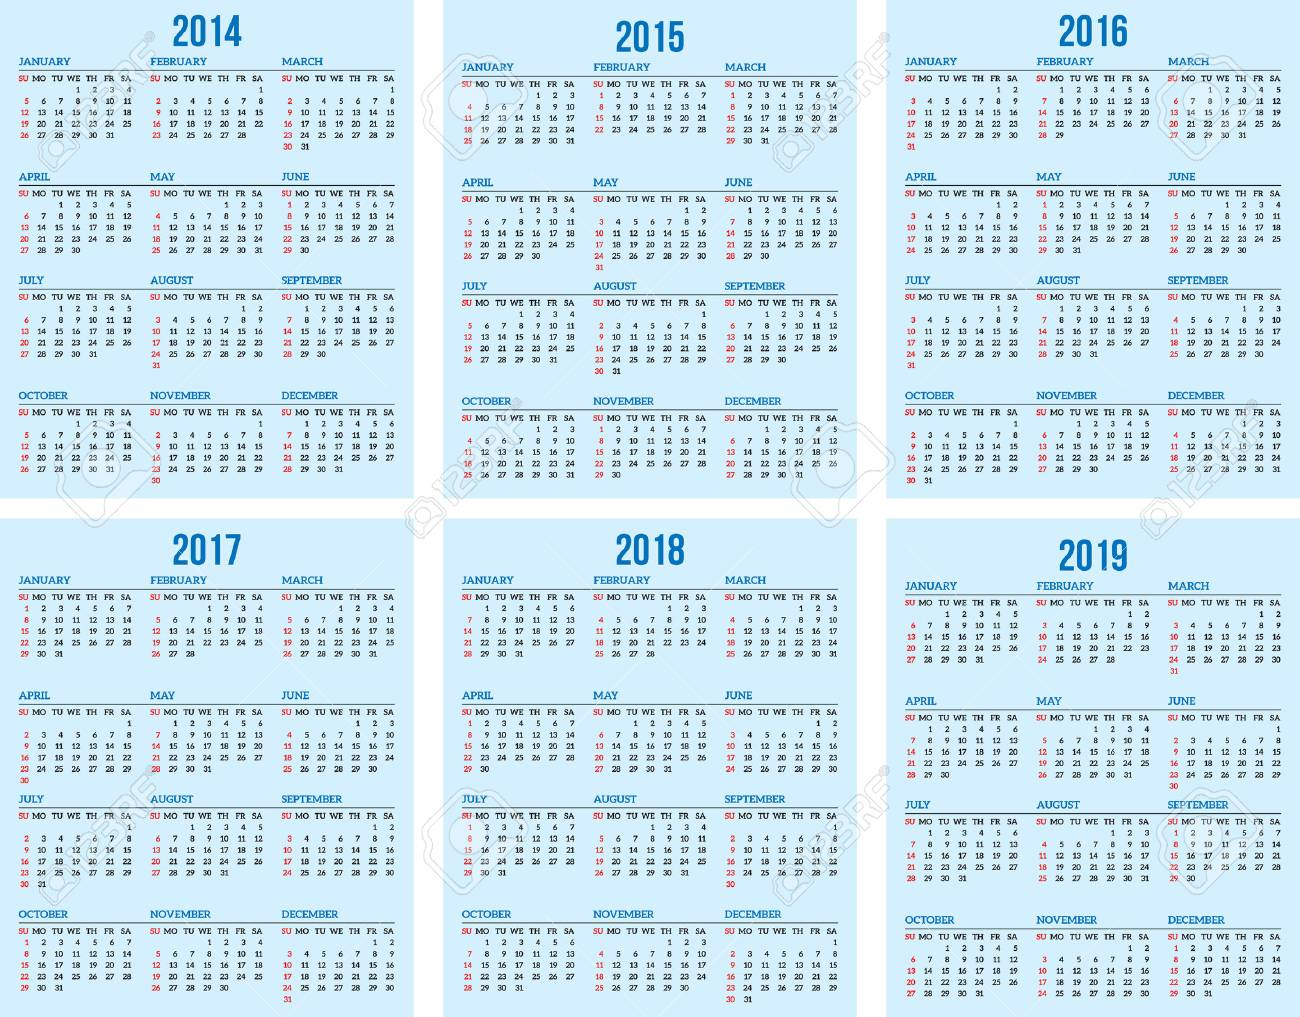 Free Calendar 2014 And 2019 Calendar Grid For 2014, 2015, 2016, 2017, 2018, 2019 Royalty Free